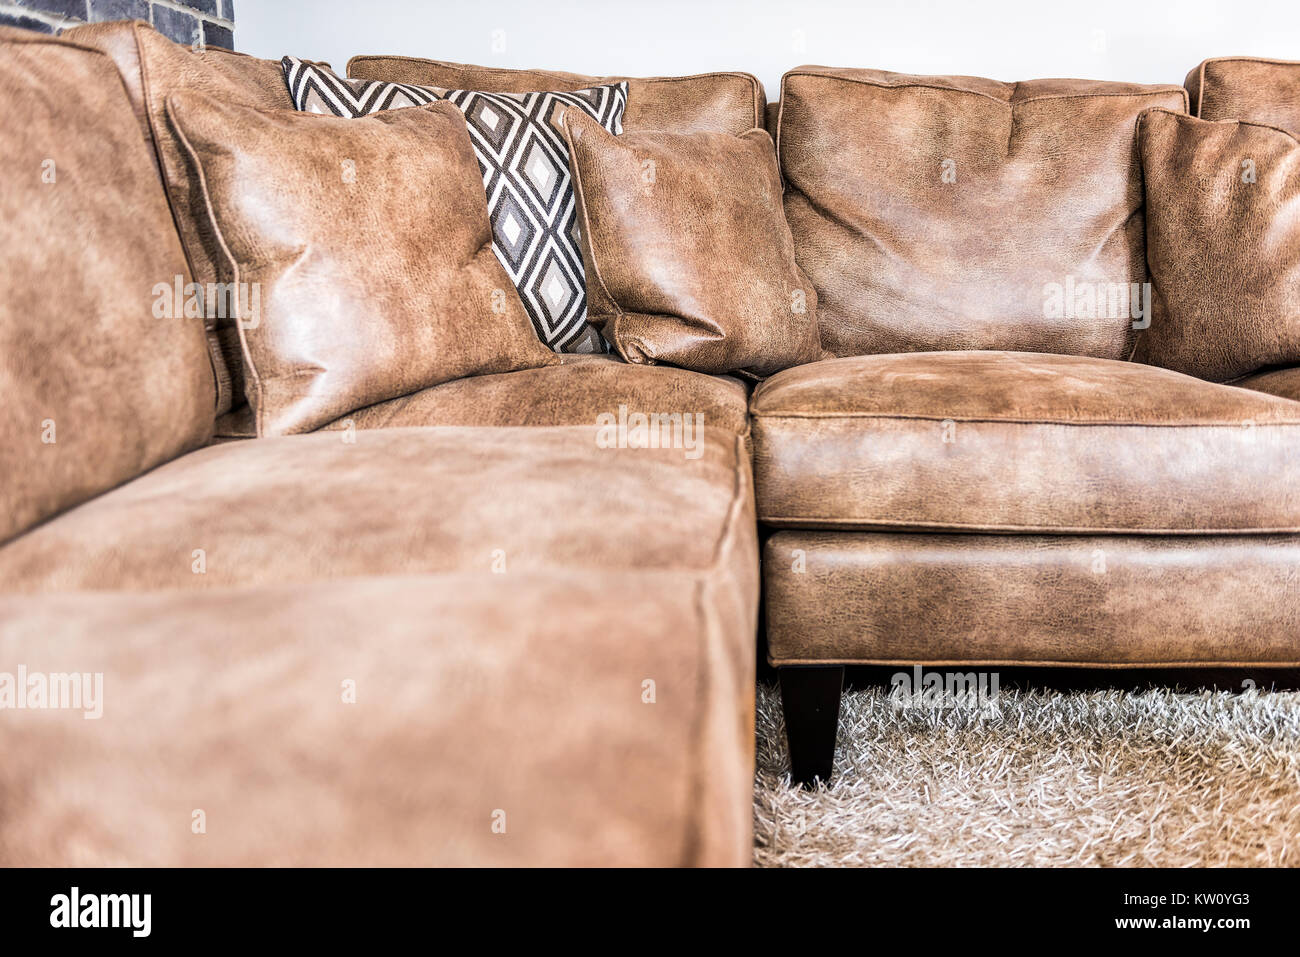 Elegant Modern Room Closeup Of Leather Couch And Fluffy Rug